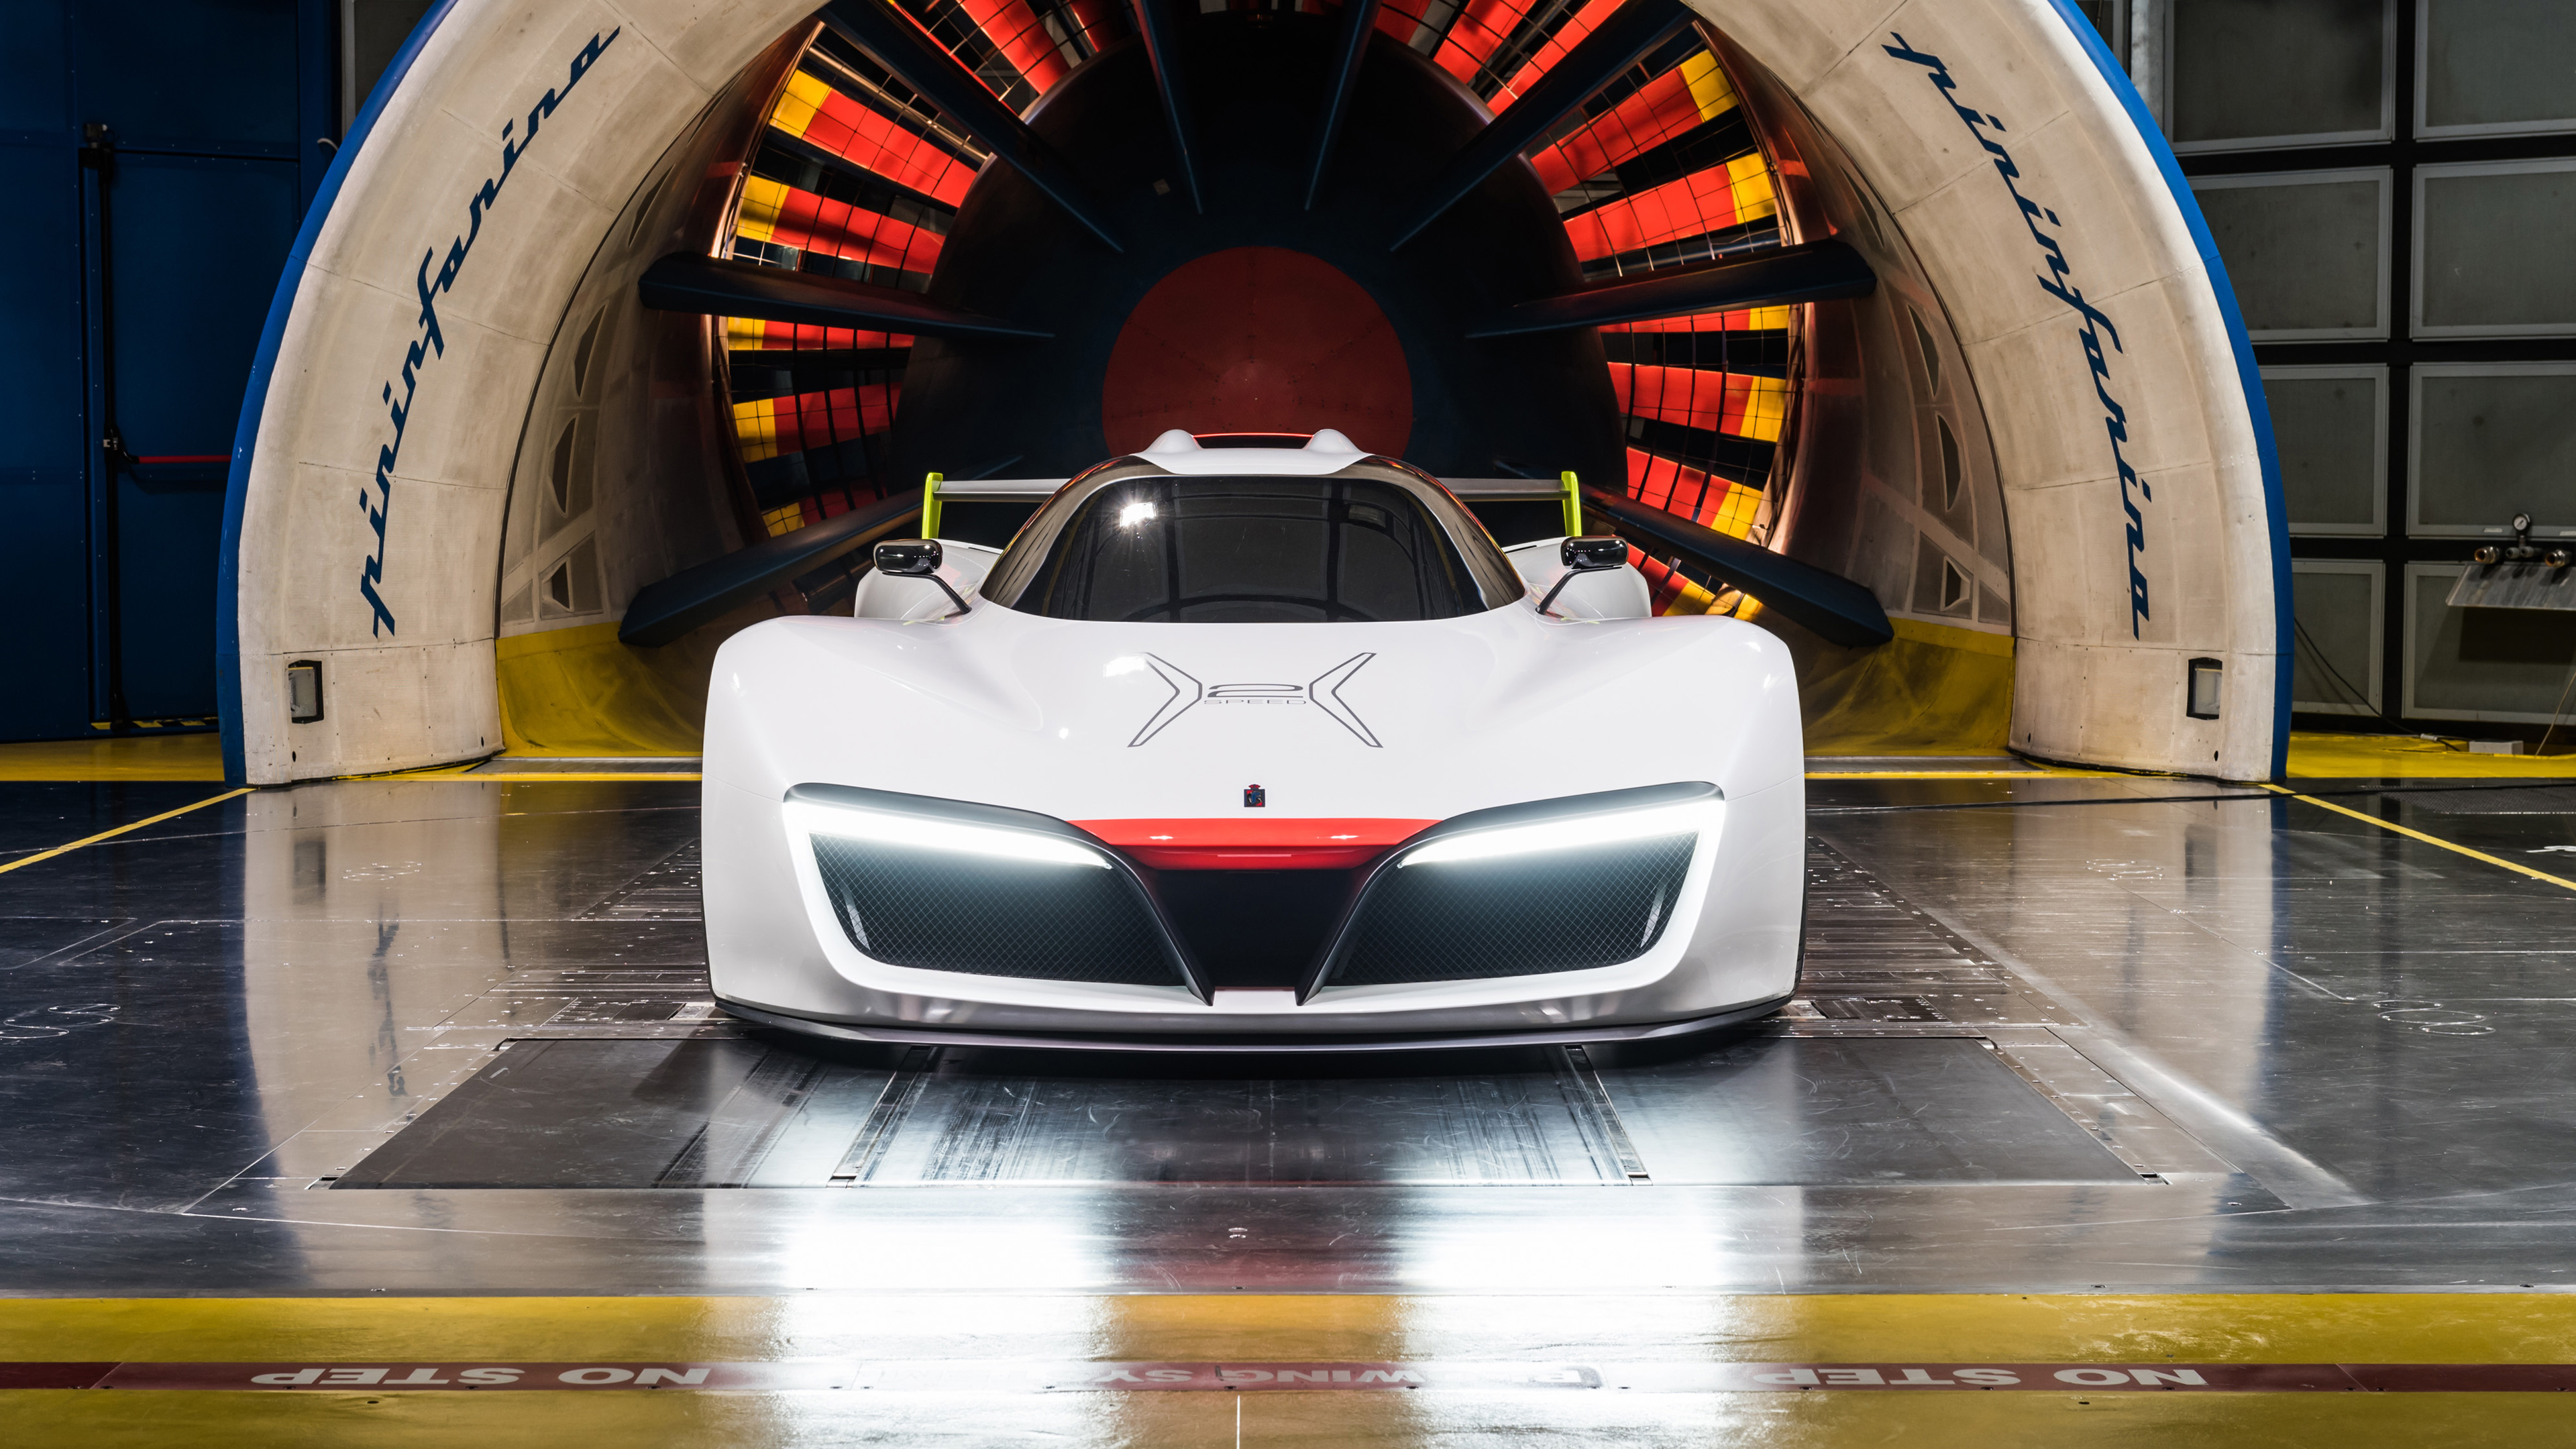 Pininfarina Speed Supercar Wallpaper Hd Car Wallpapers